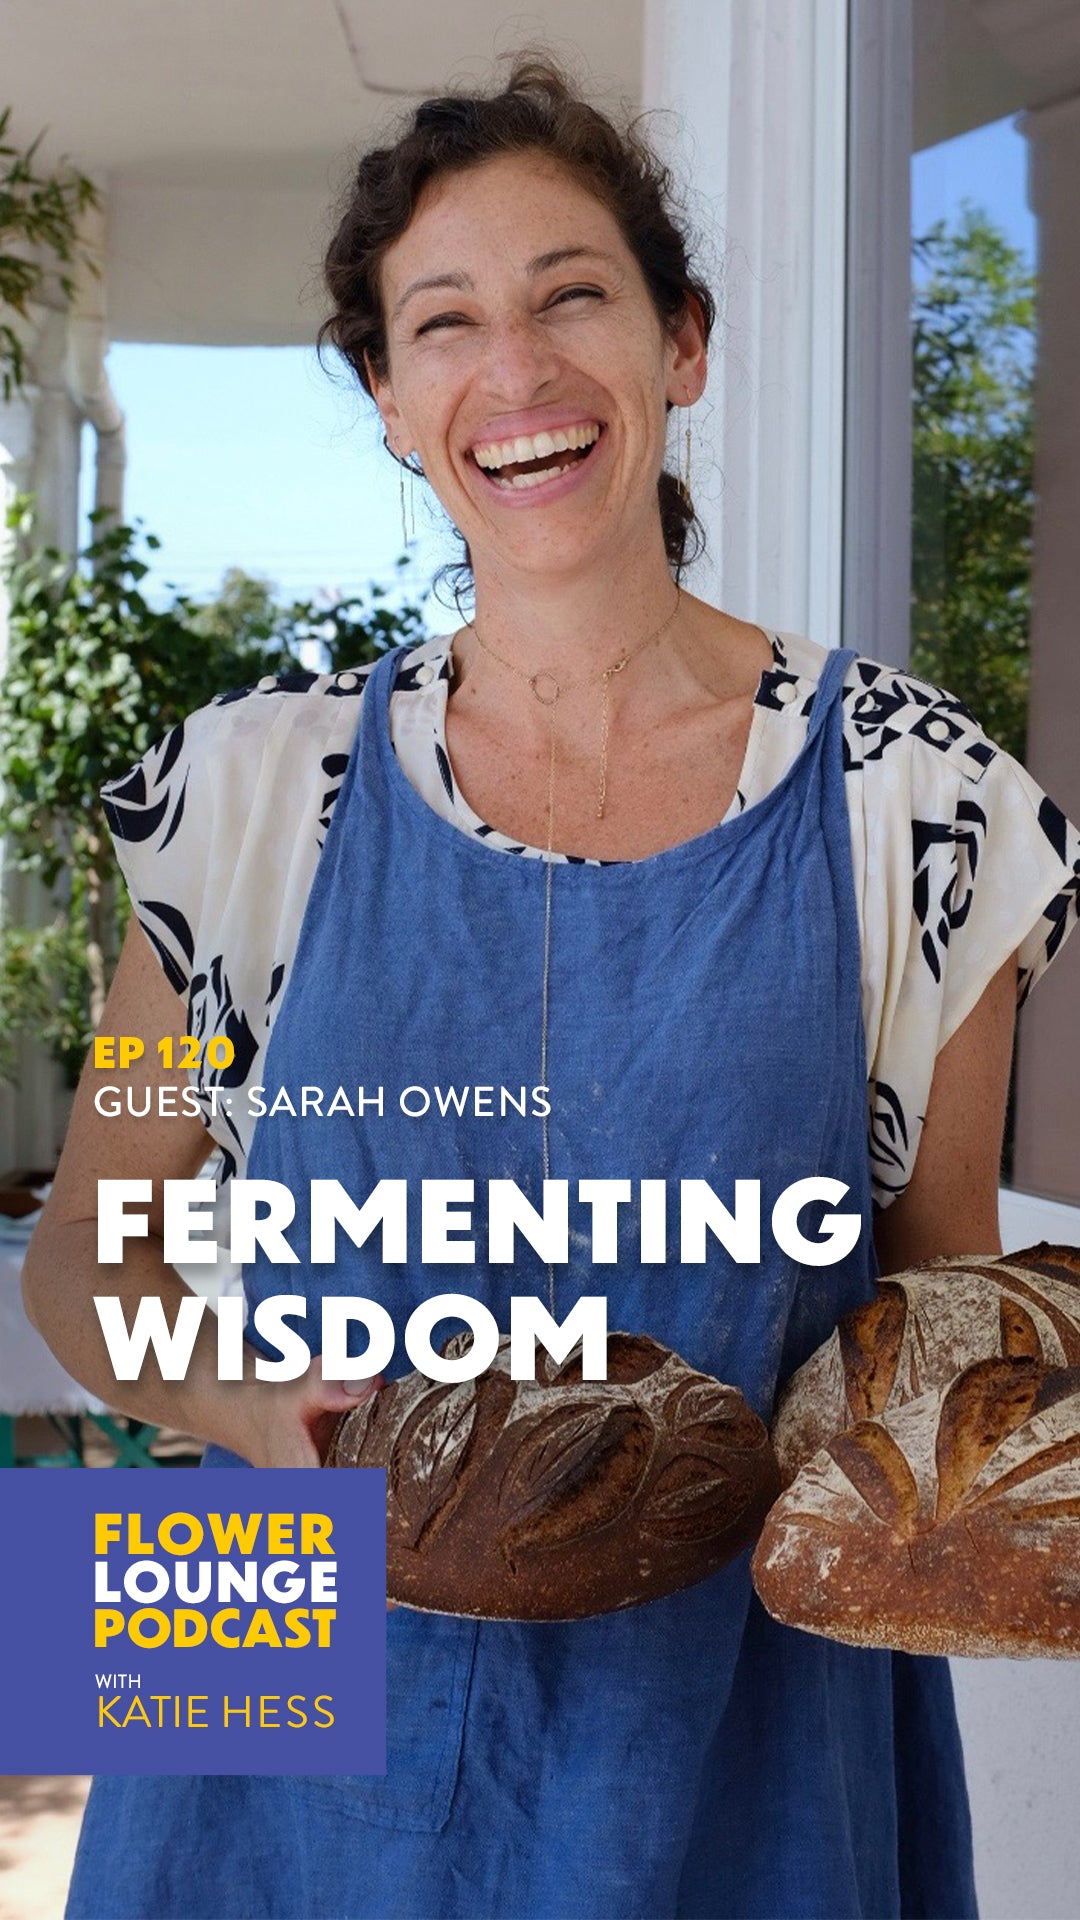 Fermenting Wisdom with Sarah Owens on the Flowerlounge Podcast with Katie Hess